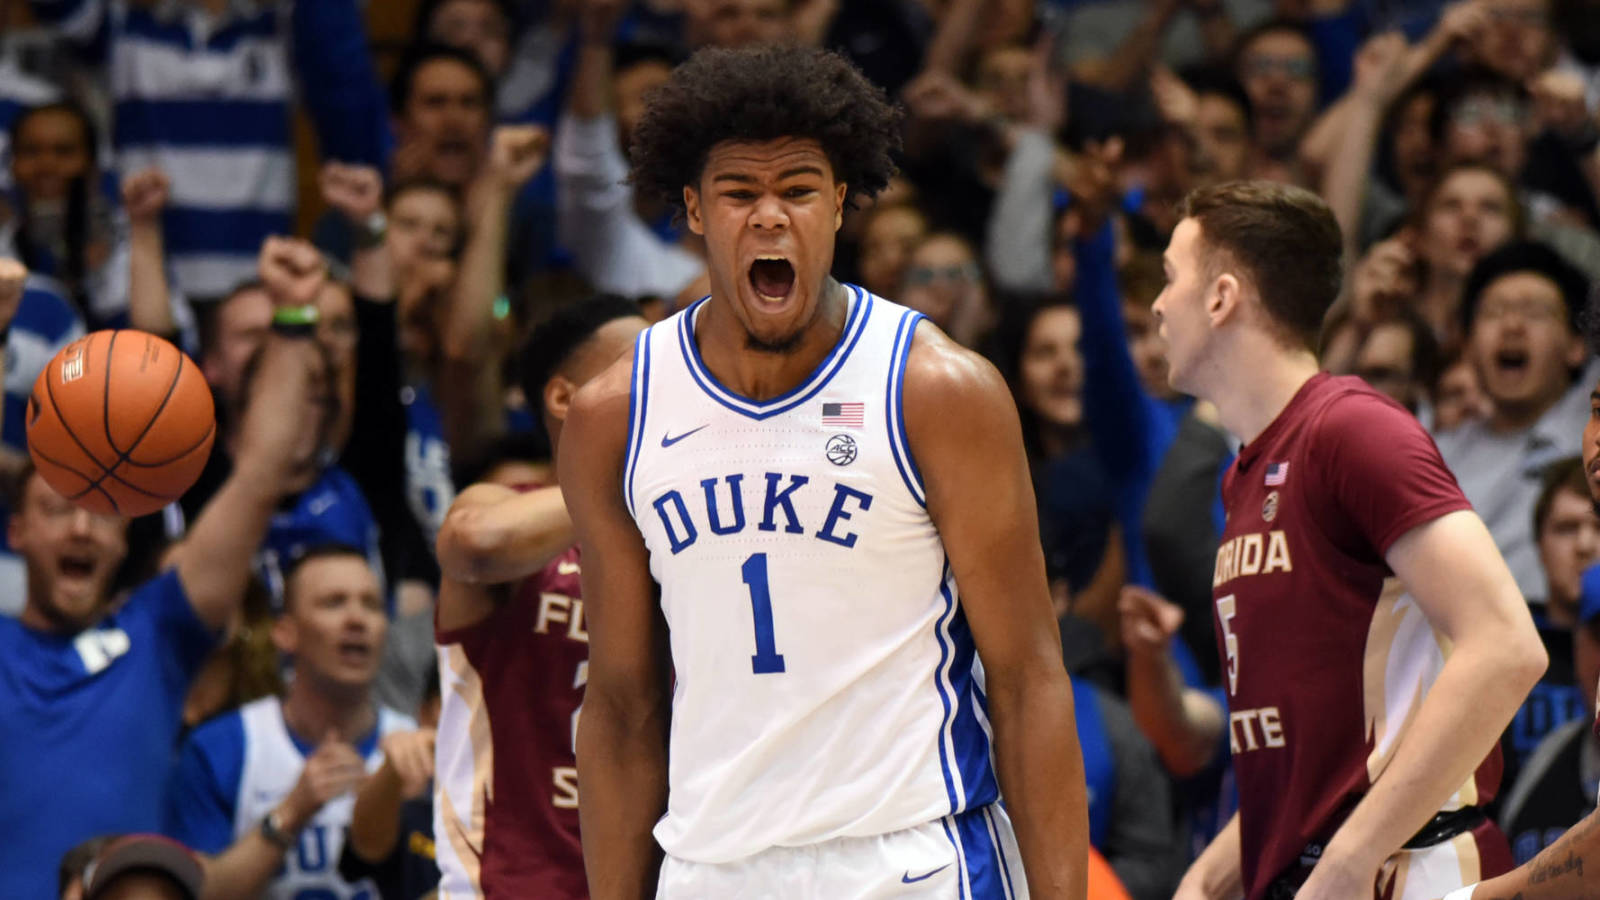 Five leading candidates for college basketball's National Player of the Year